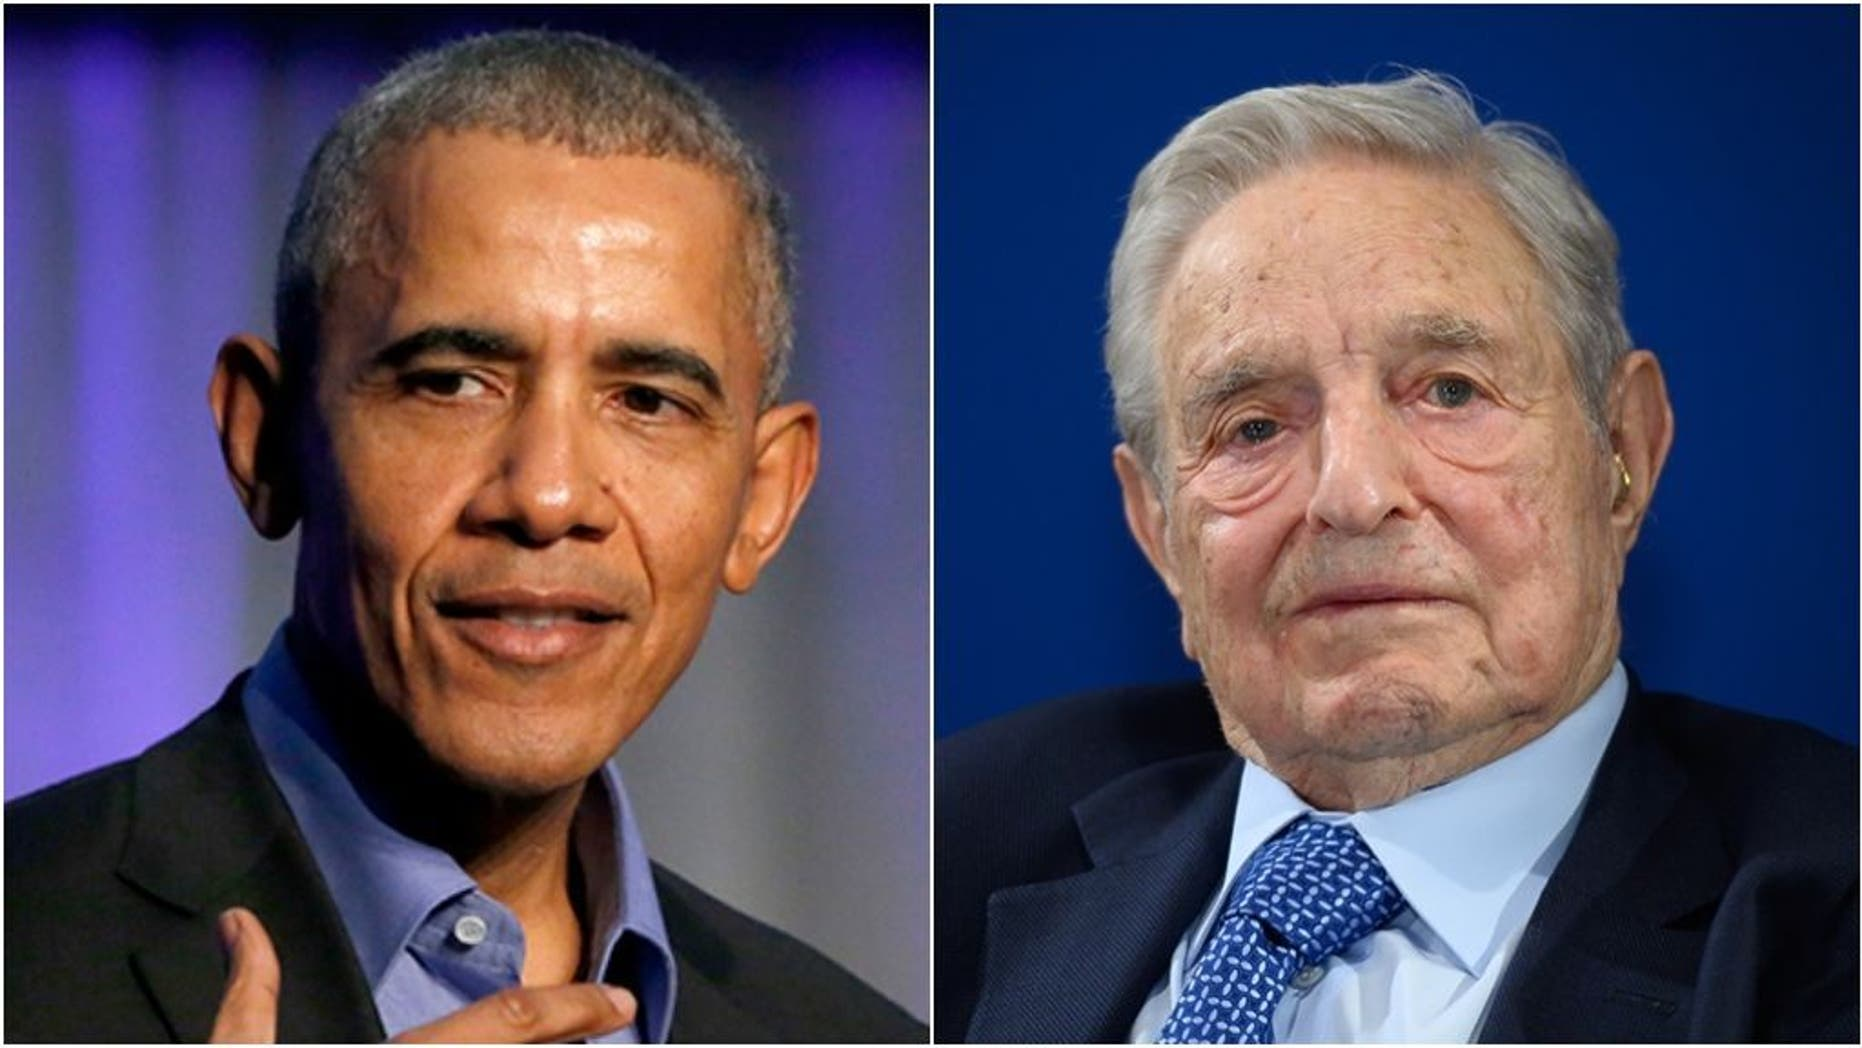 Westlake Legal Group ObamaSoros021820 Dershowitz: Obama asked FBI to investigate someone on behalf of Soros; Boys Scouts file for bankruptcy fox-news/columns/fox-news-first fox news fnc/us fnc article 6a2e5322-e5d5-5e78-b6b9-e284137b0d43